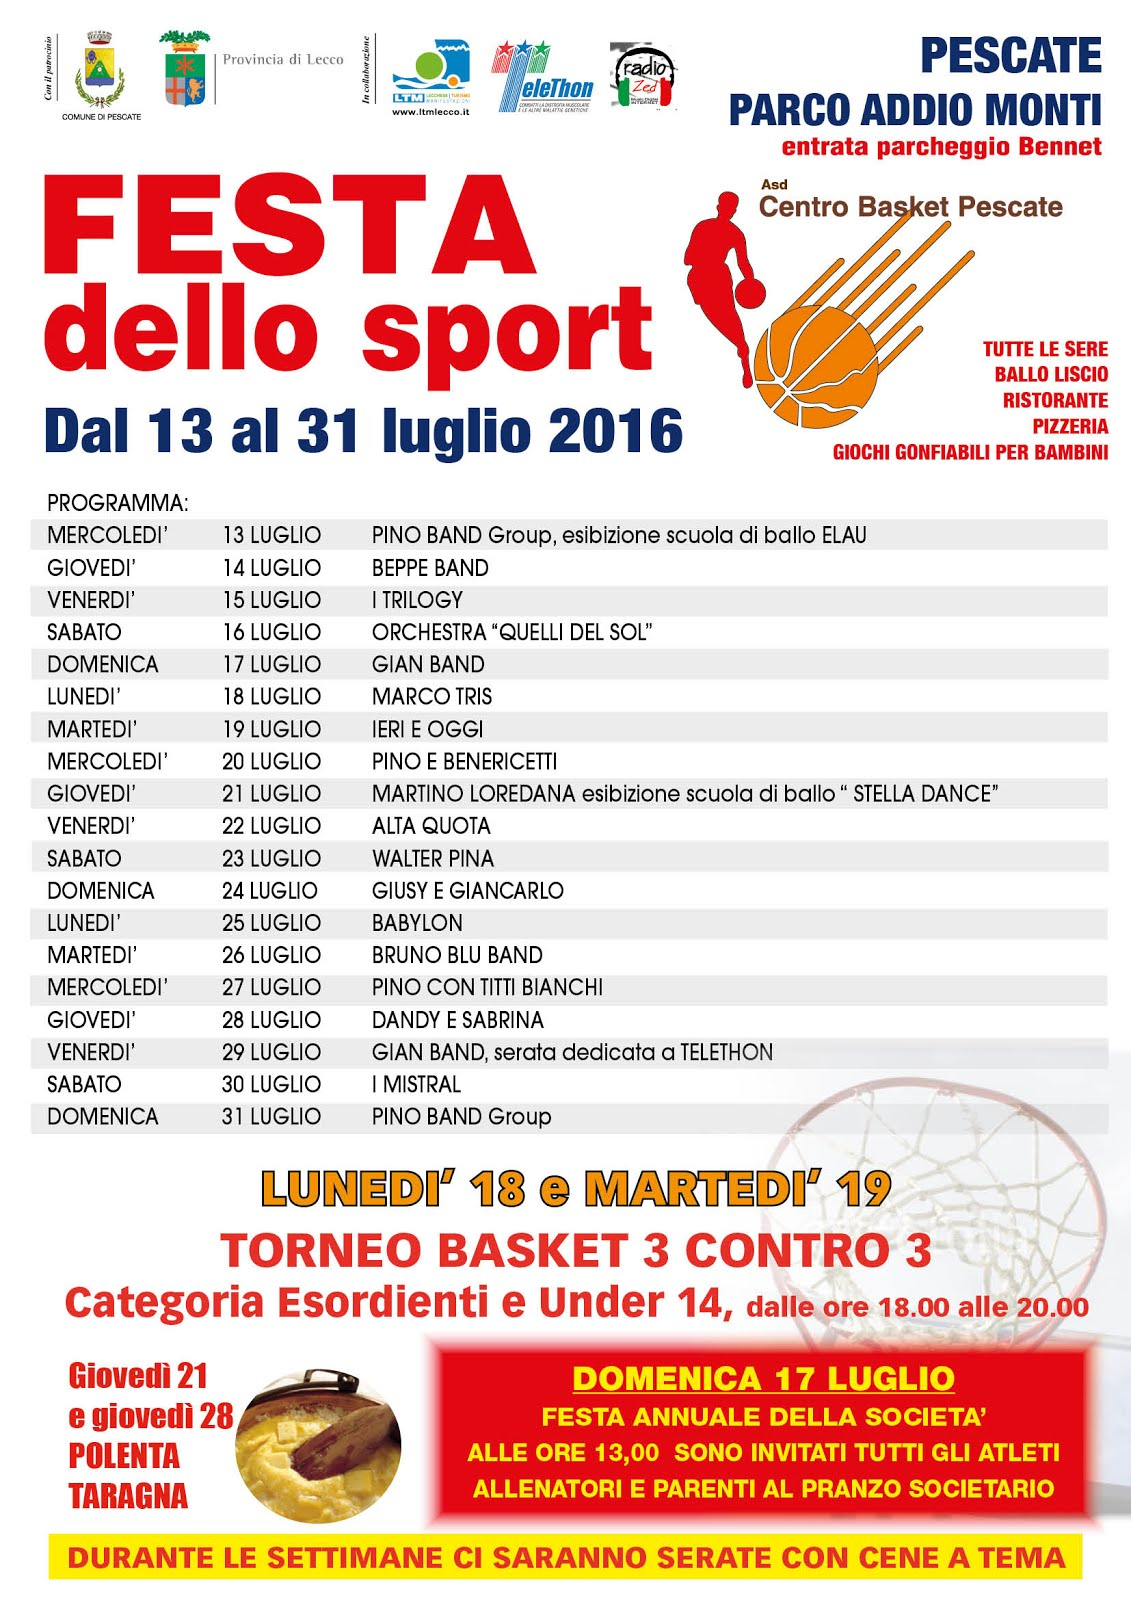 Festa dello sport